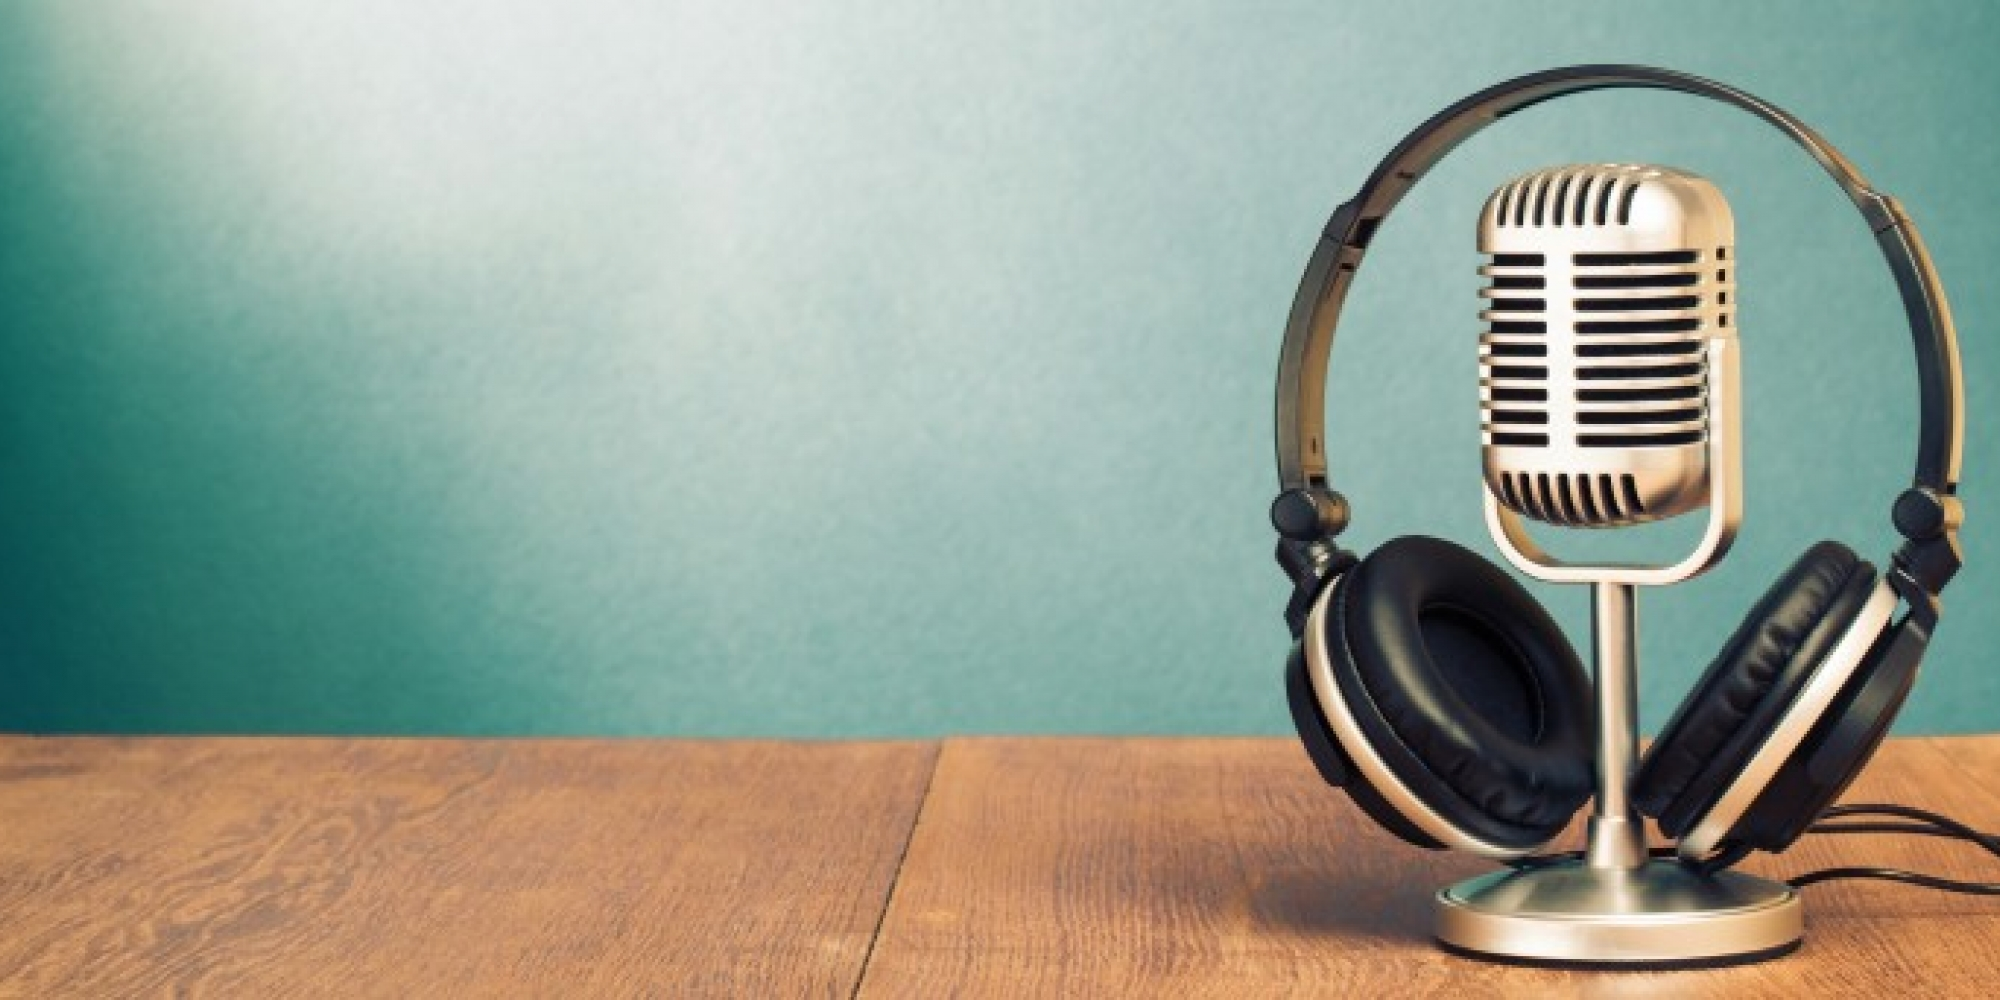 Podcast Revolution: The Rise and Success of Audio Storytelling